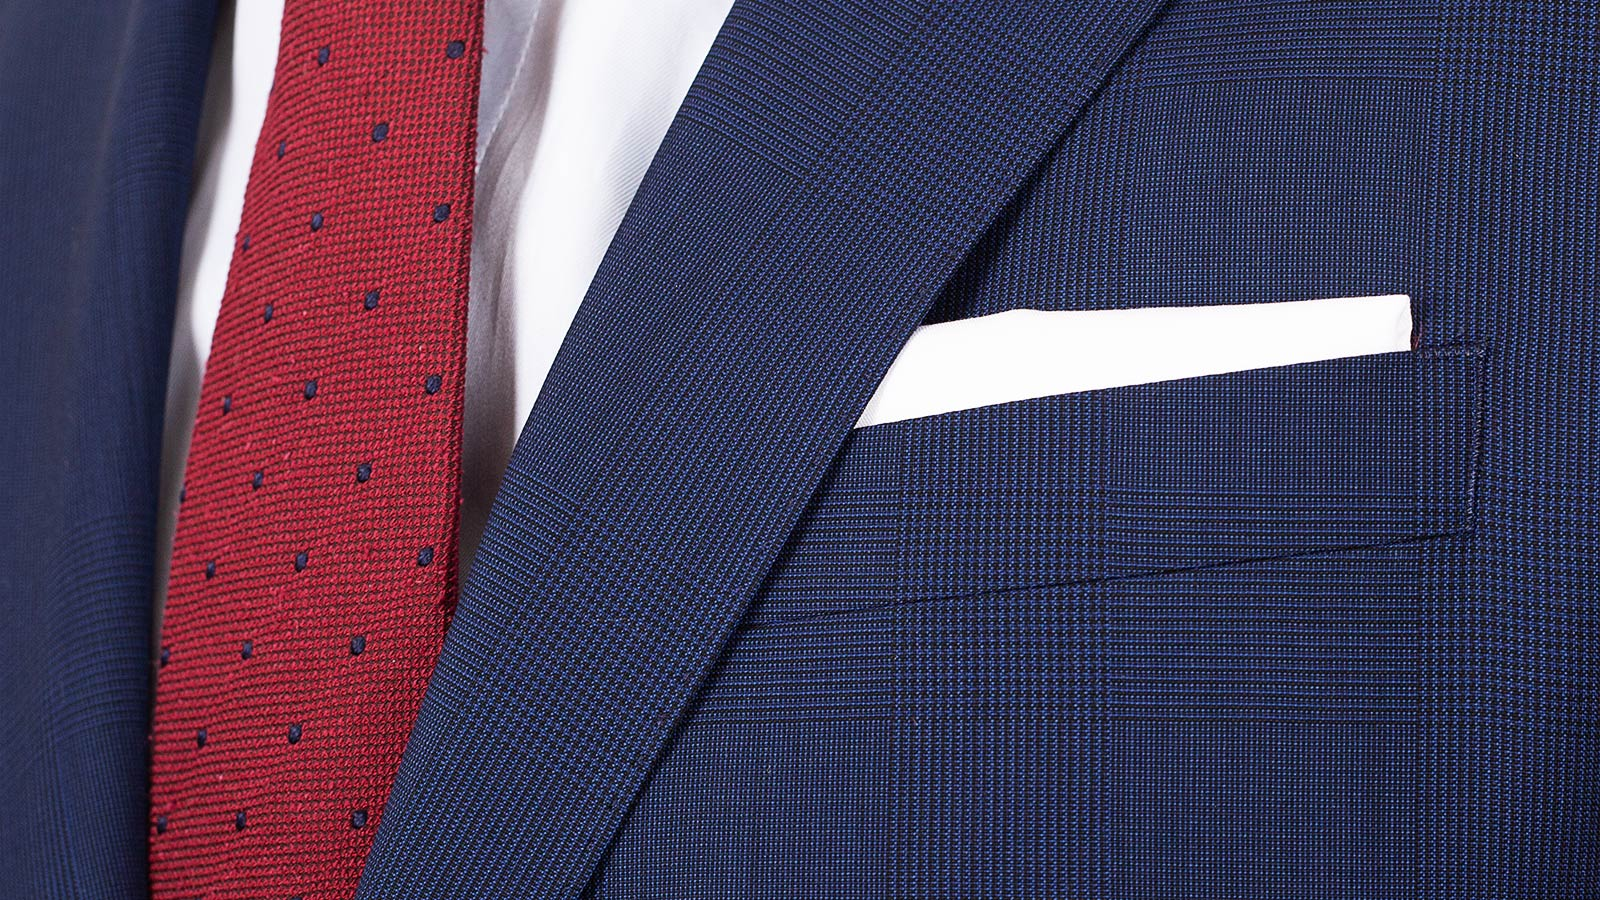 Navy Shadow Plaid Suit - slider image 1